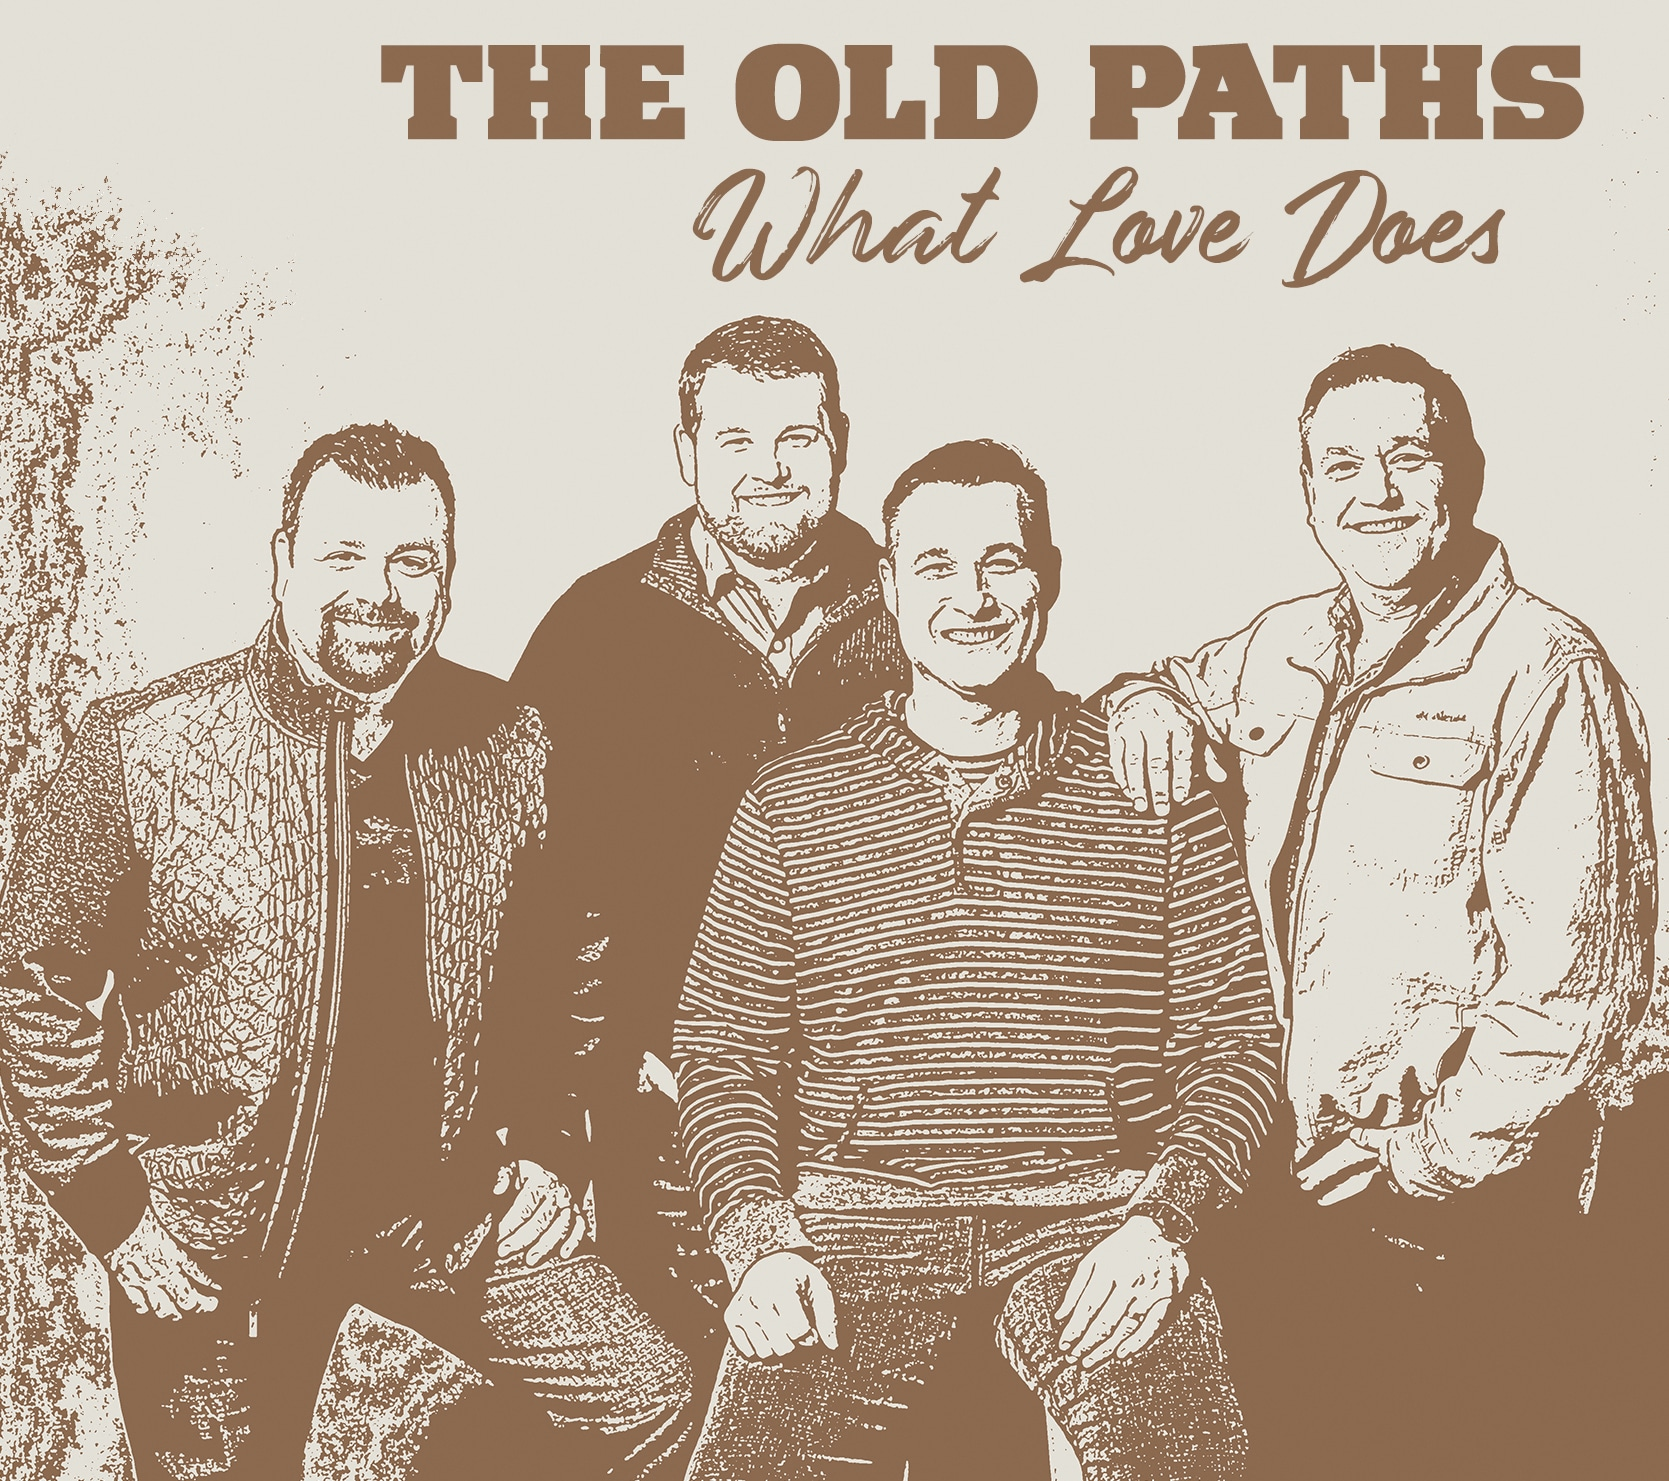 The cover of The Old Paths album What Love Does